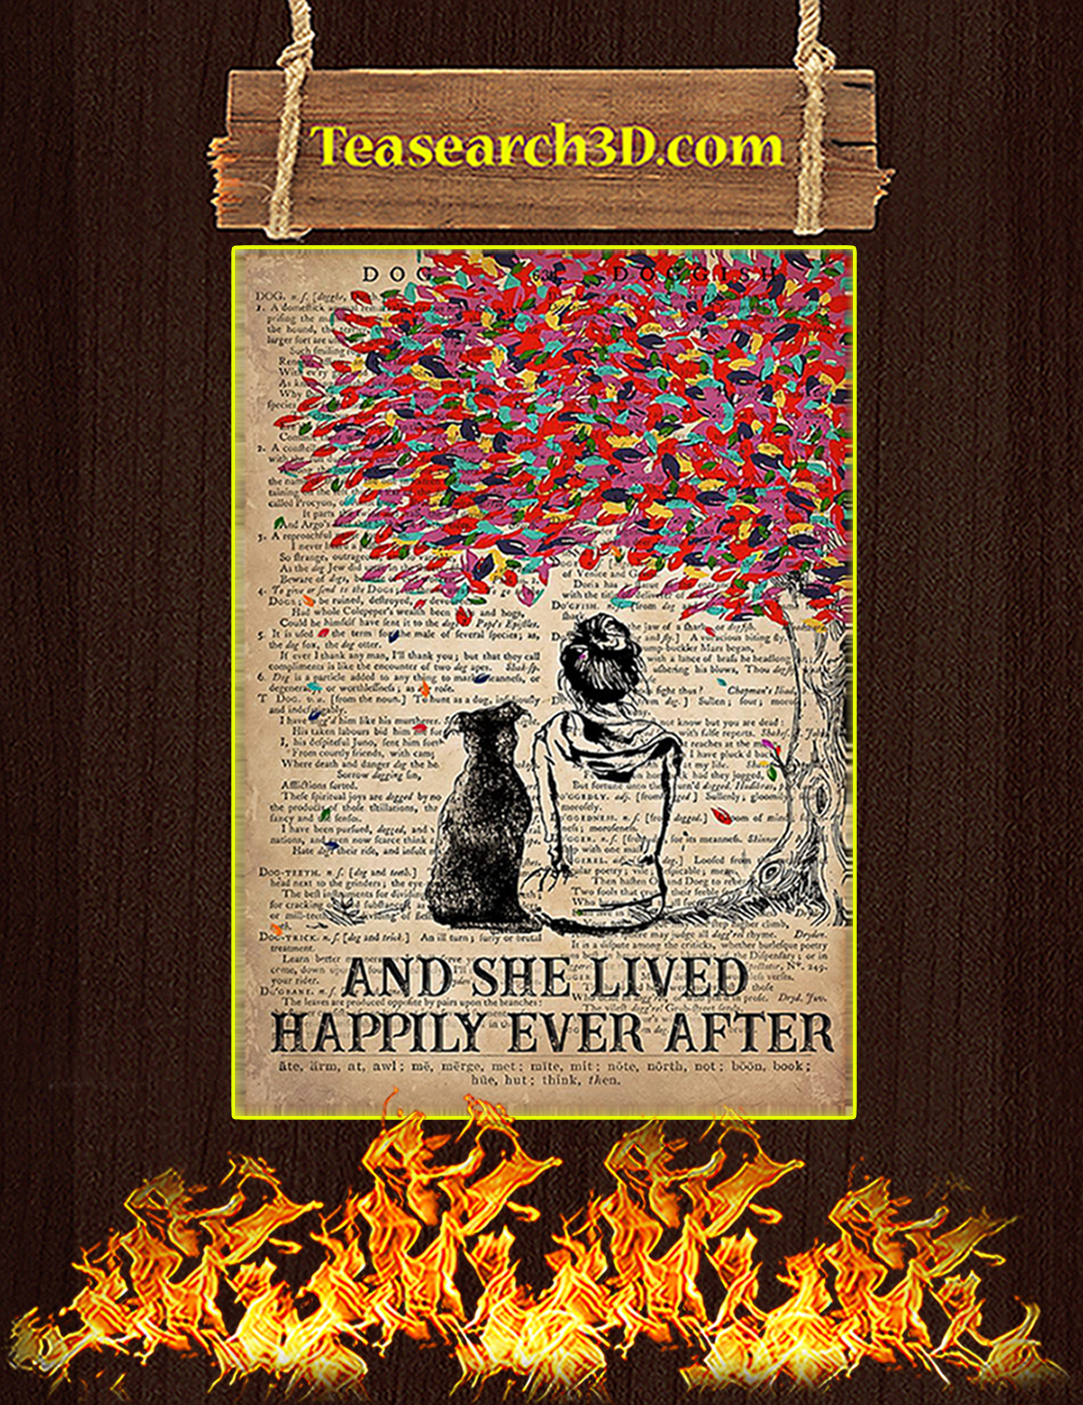 Dog pitbull and she lived happily ever after poster A2